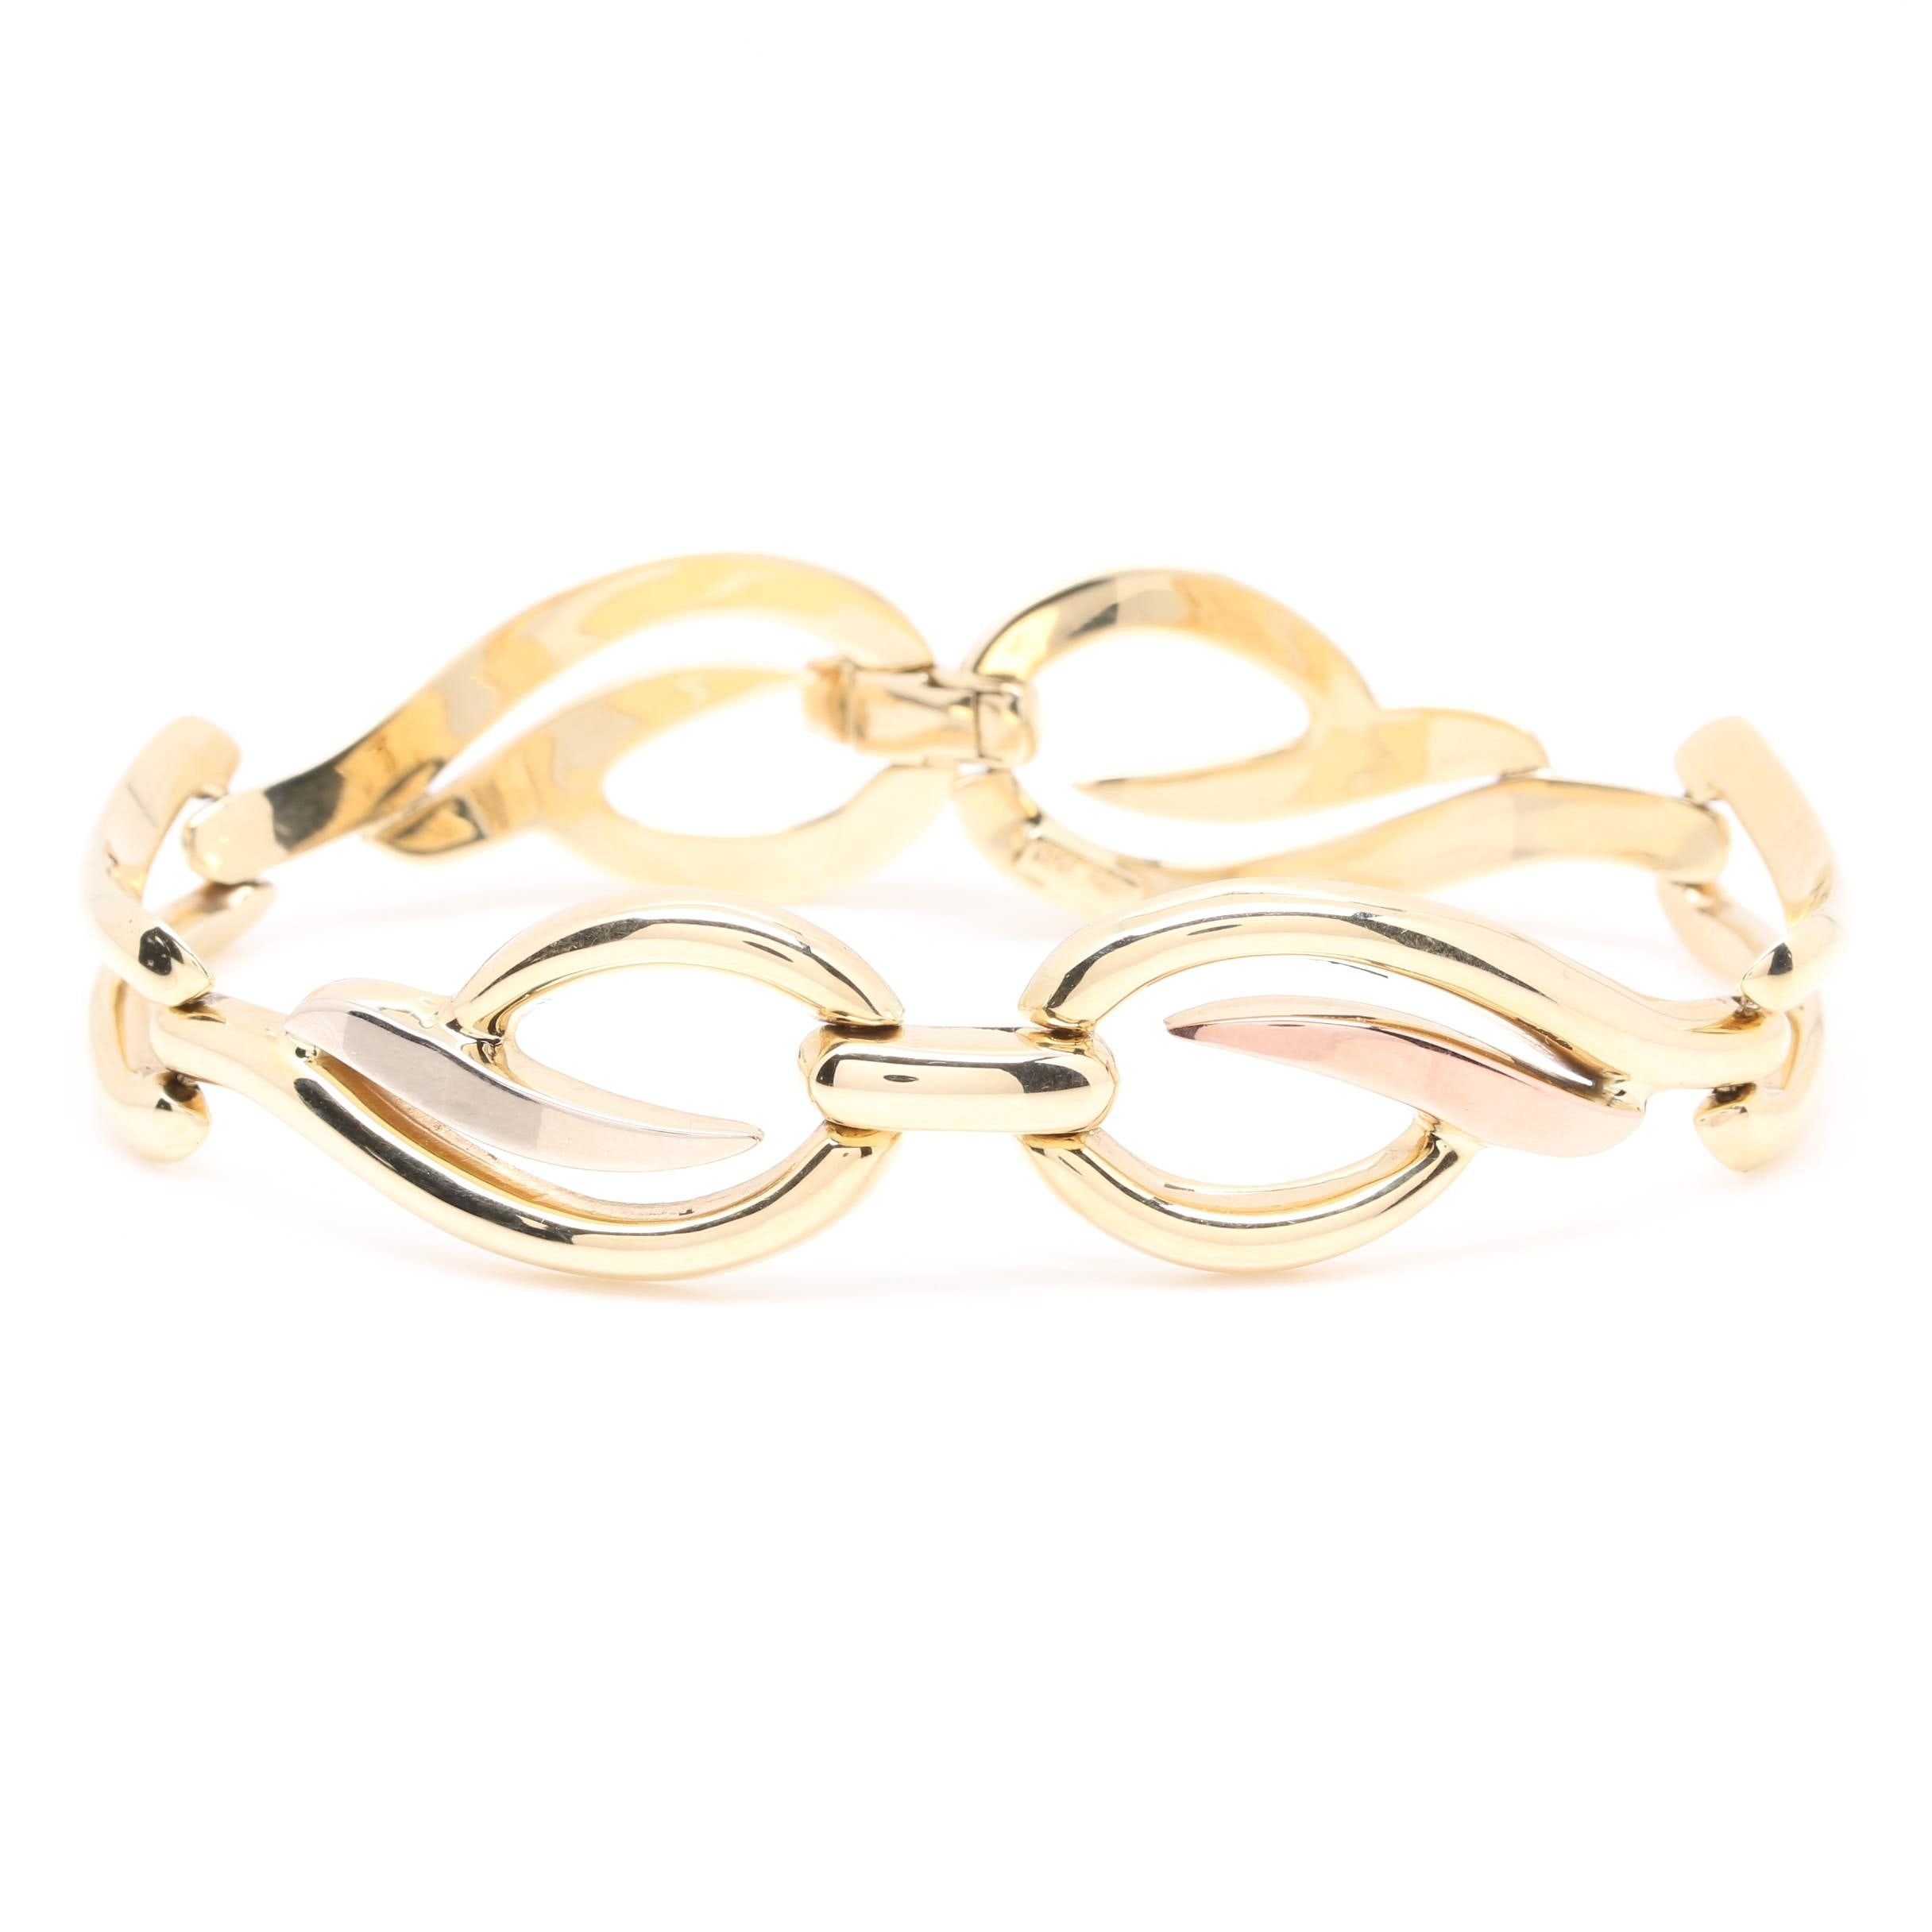 14K Yellow Gold Fancy Link Bracelet with White and Rose Accents